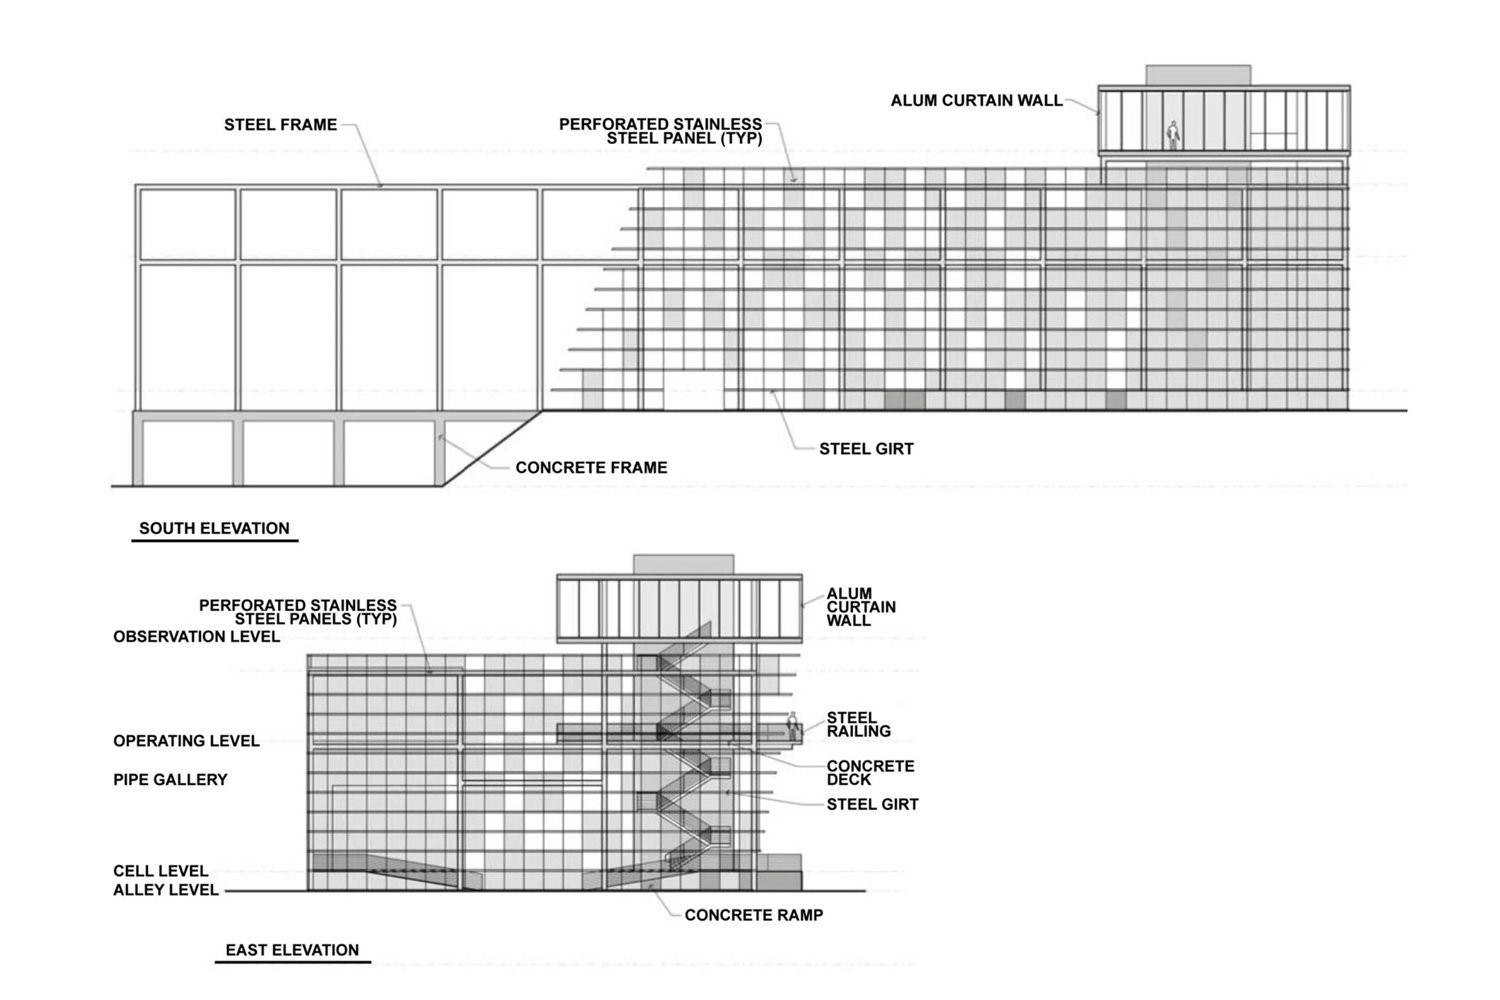 K-25 Equipment Building - Viewing Tower (East Elevation Schematic)